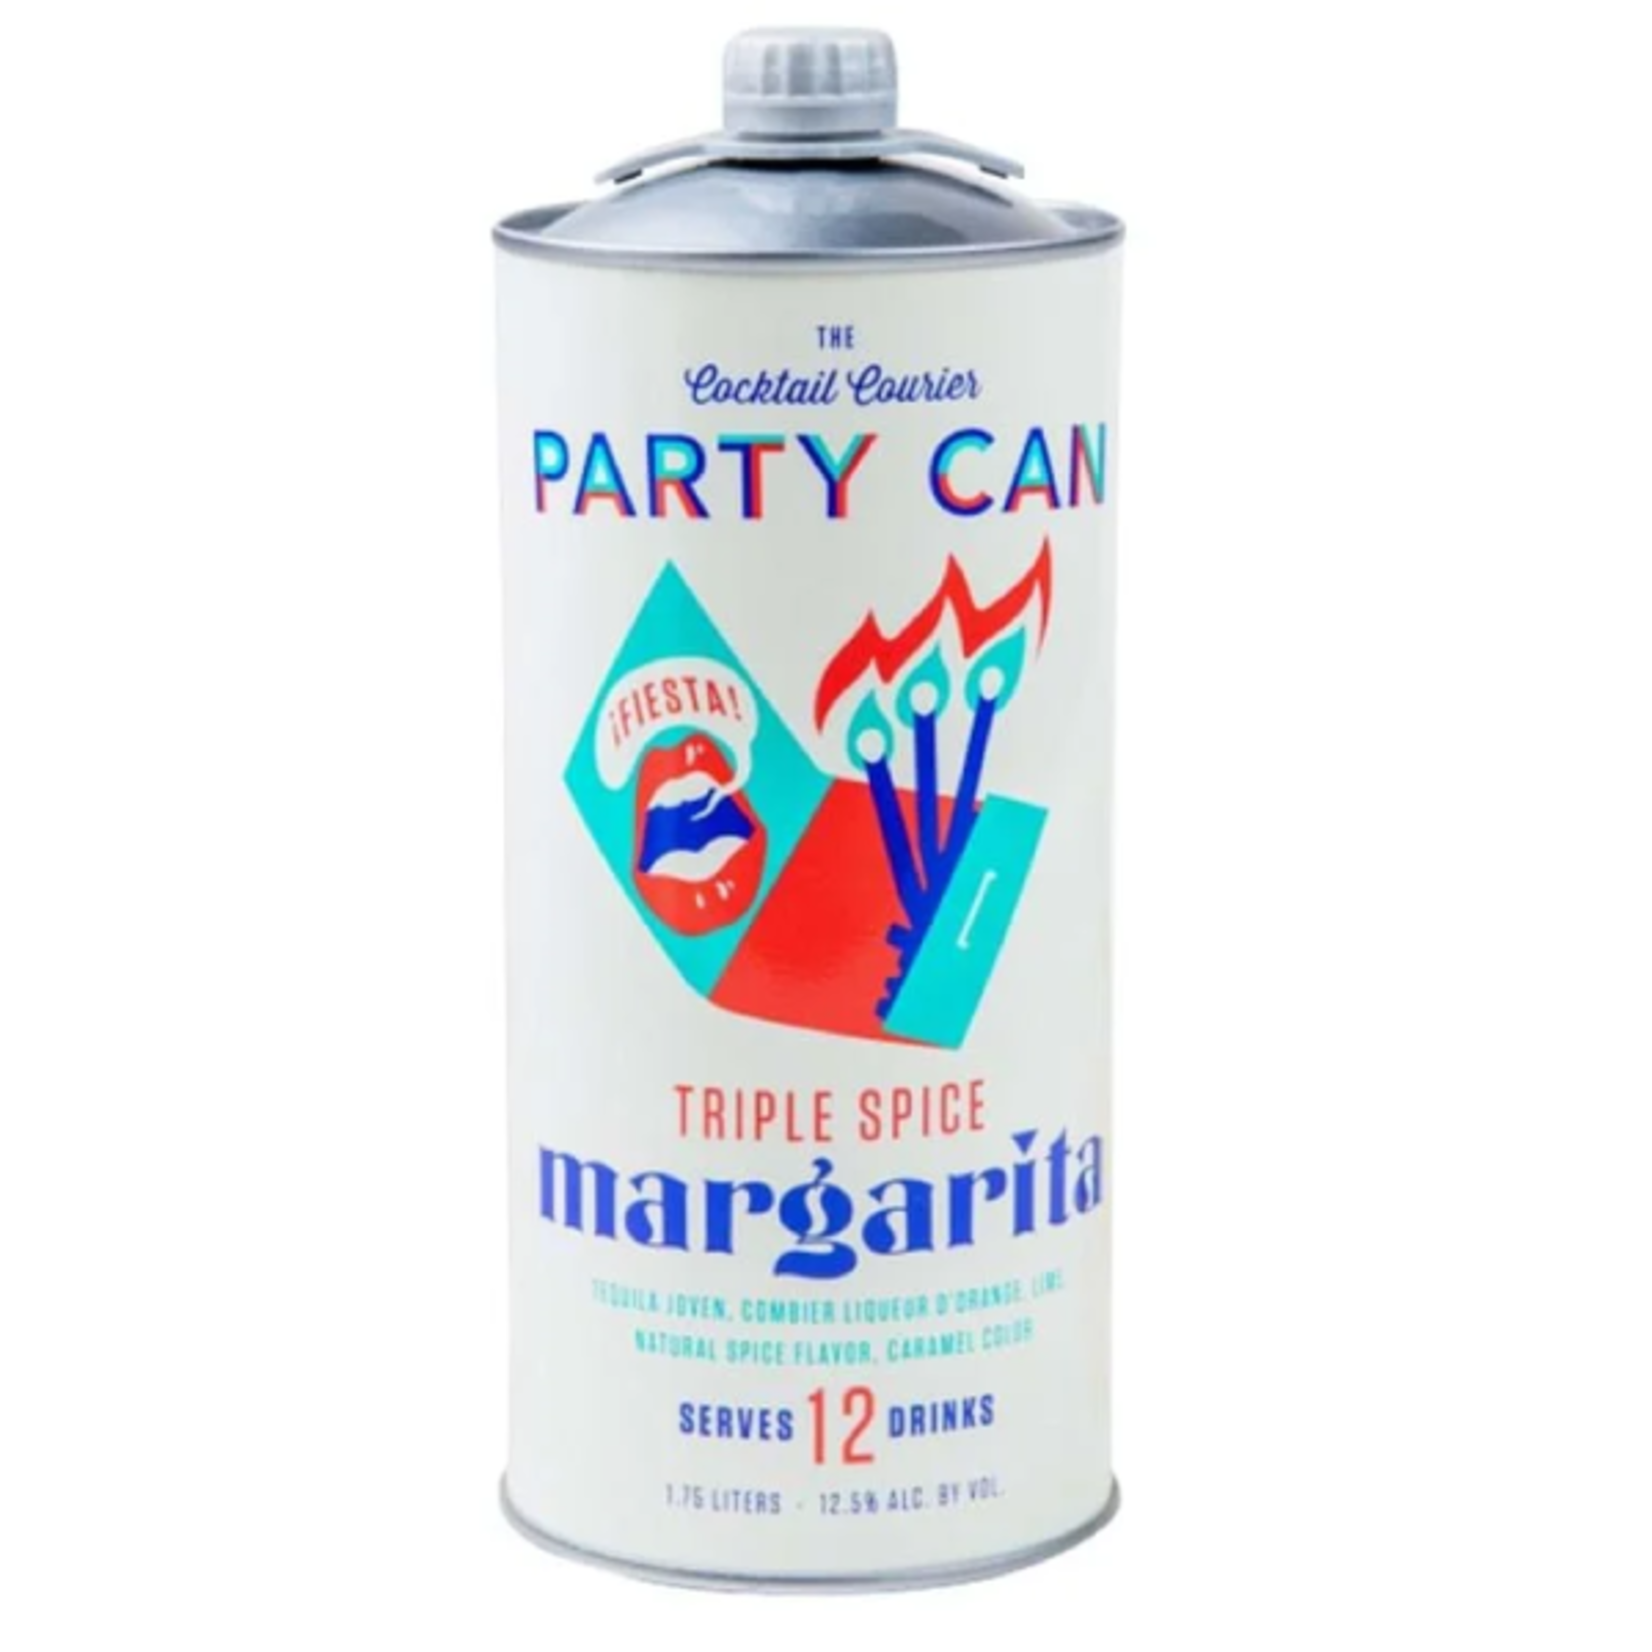 Cocktail Courier PARTY CAN - Triple Spice Margarita - 1.75L